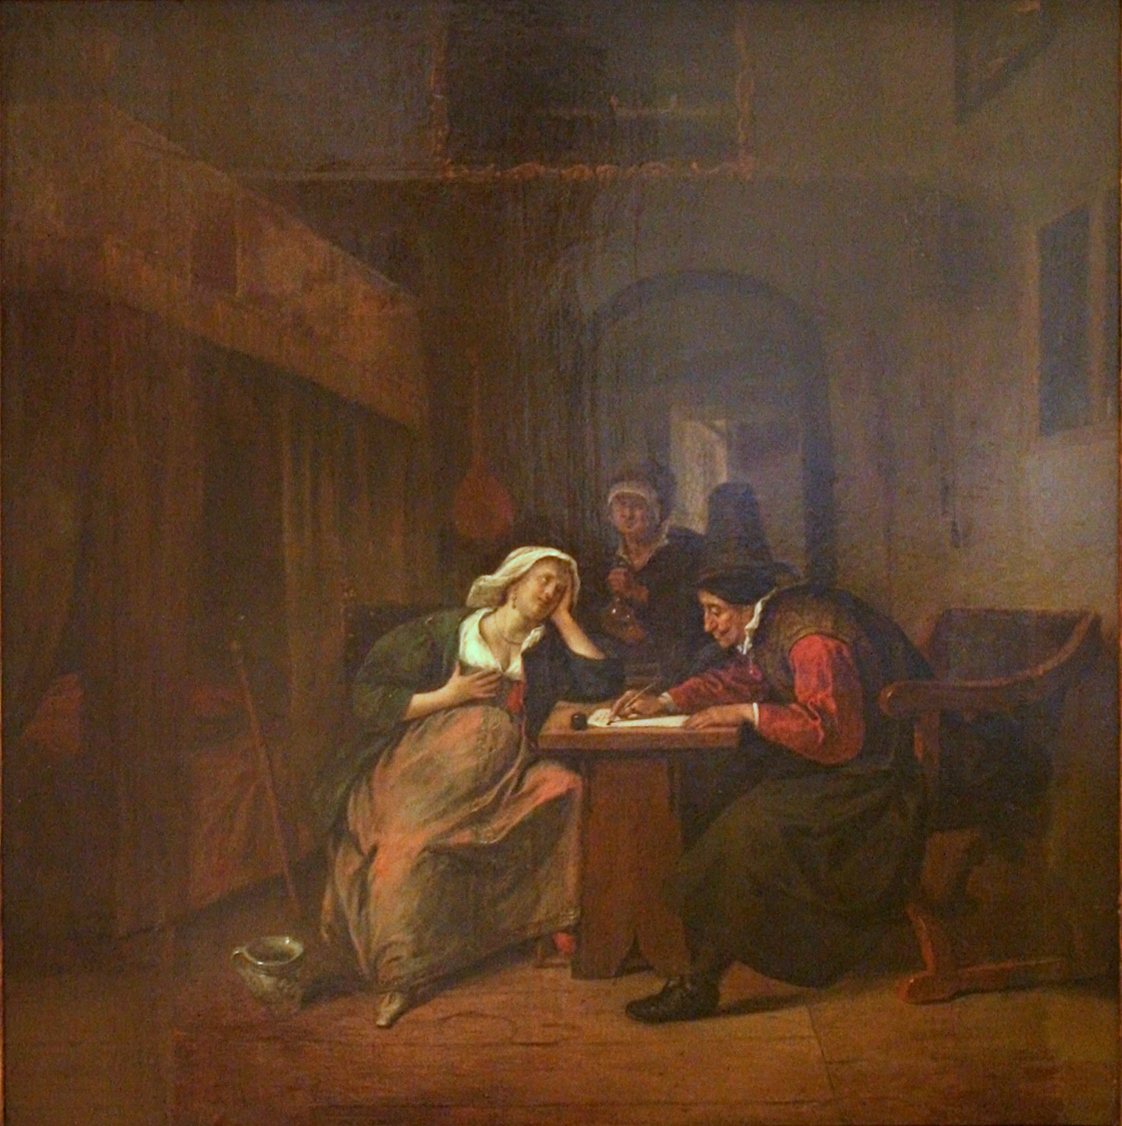 A painting of a 17th century pregnant woman and her doctor